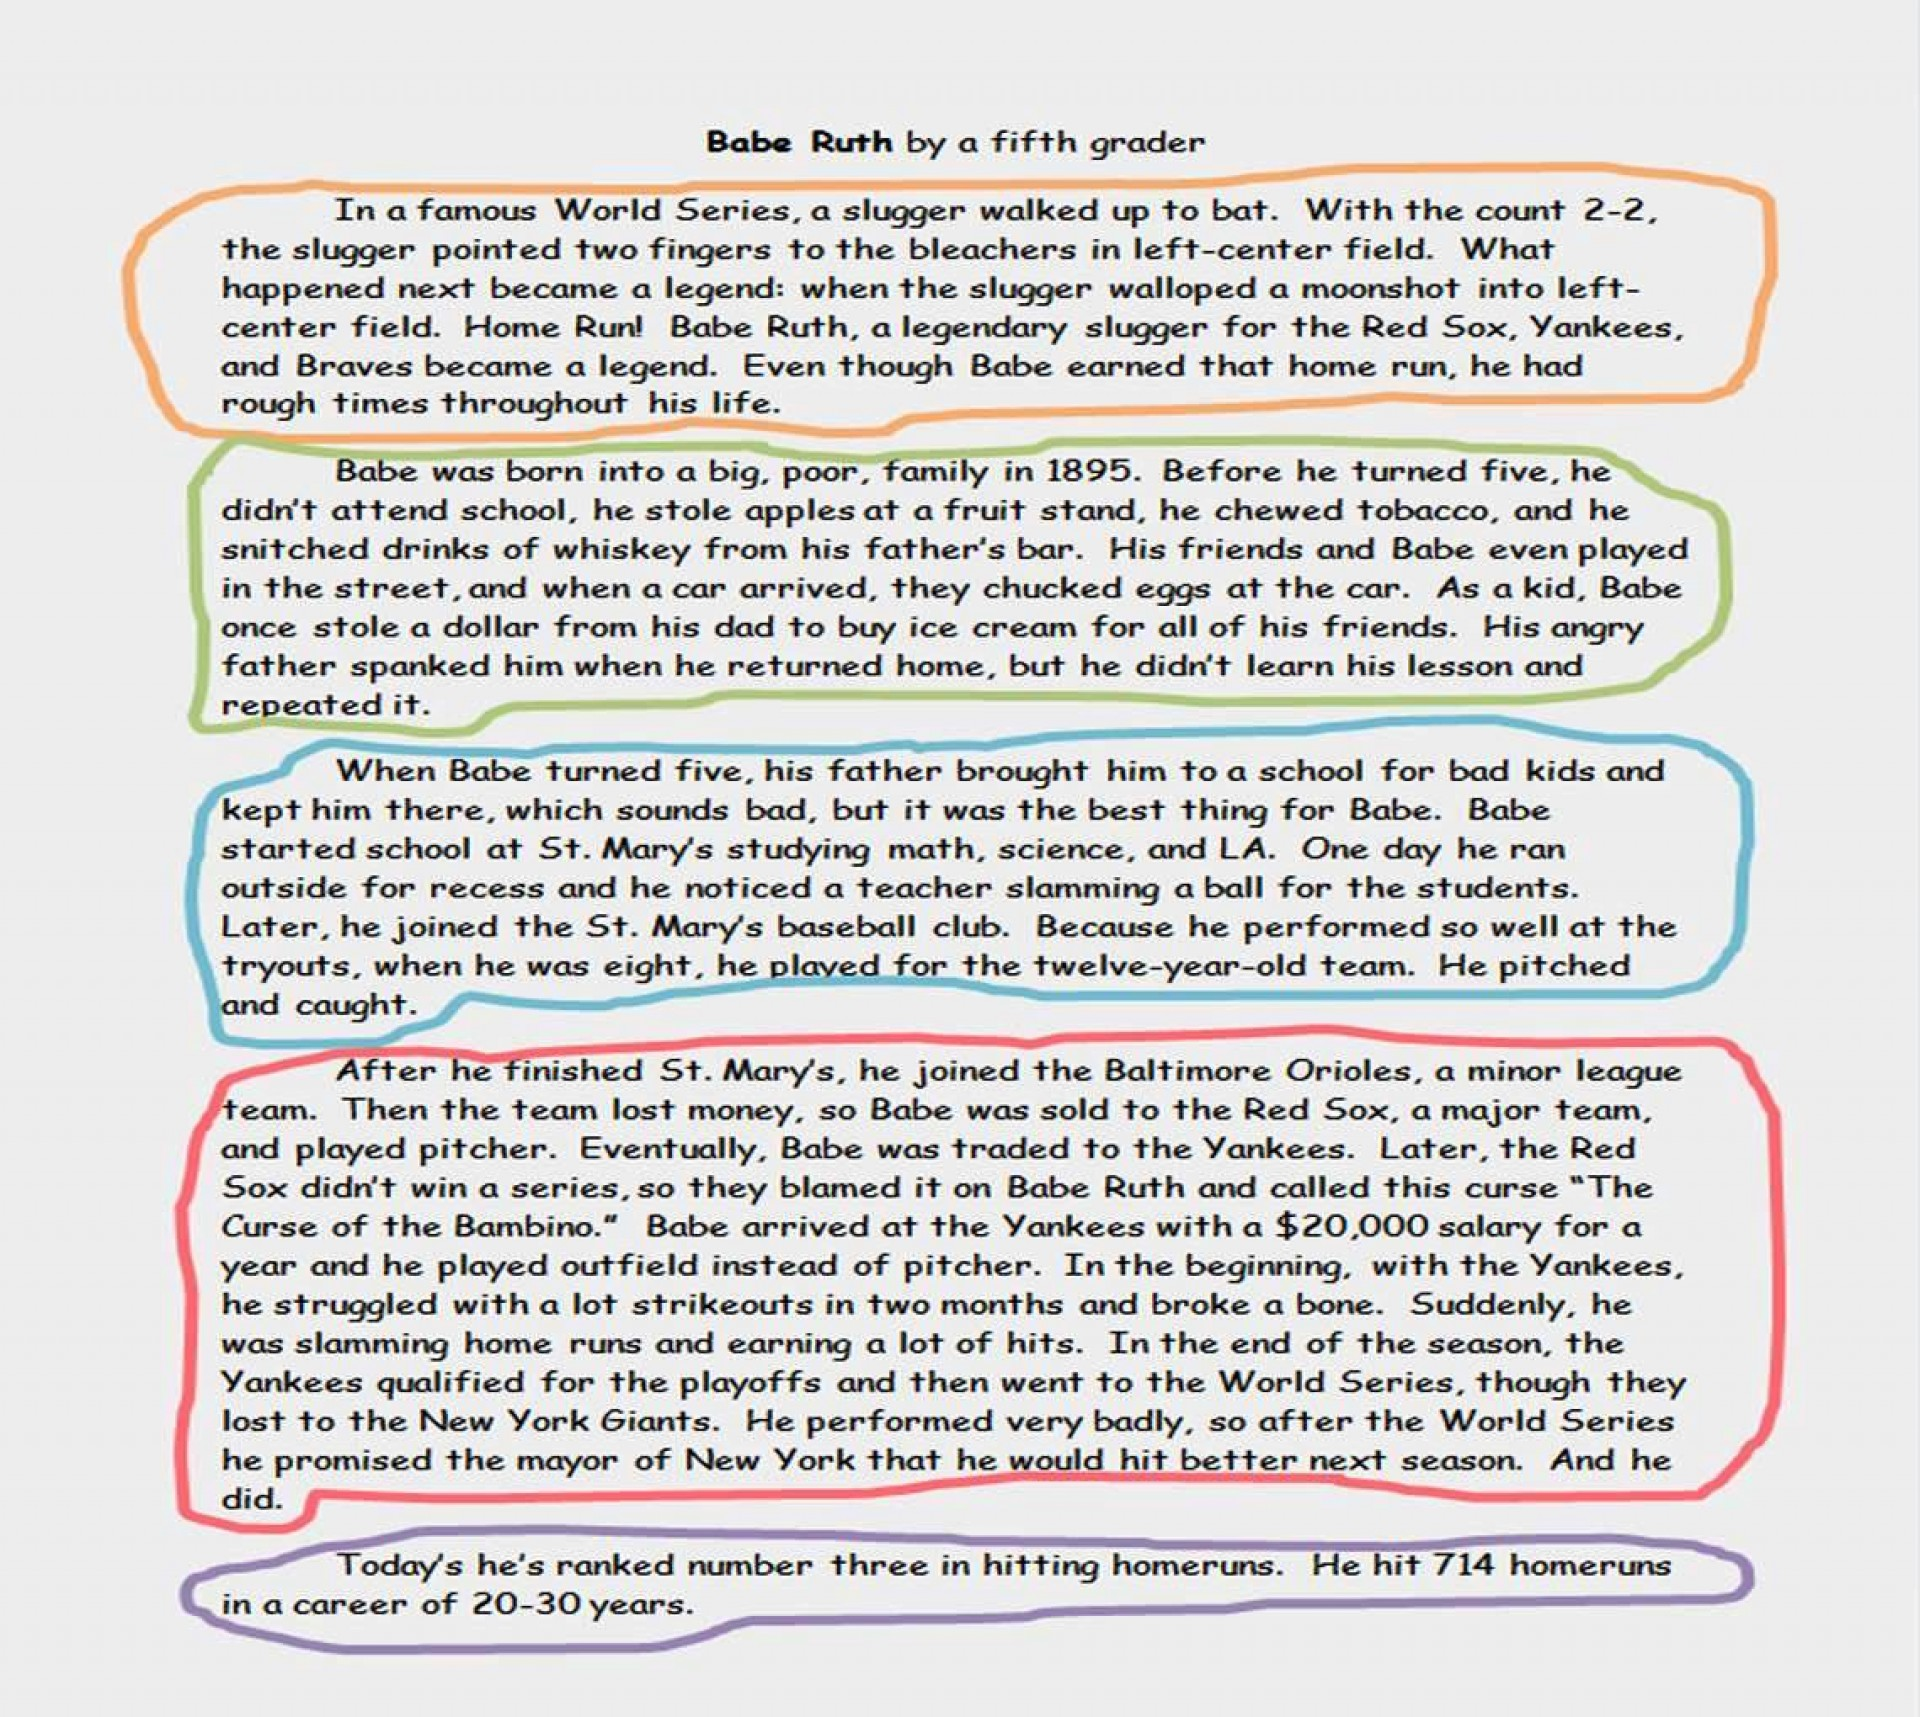 008 How Do You Write Narrative Essay Example Timeline Babe Ruth Impressive A Personal To Thesis 1920